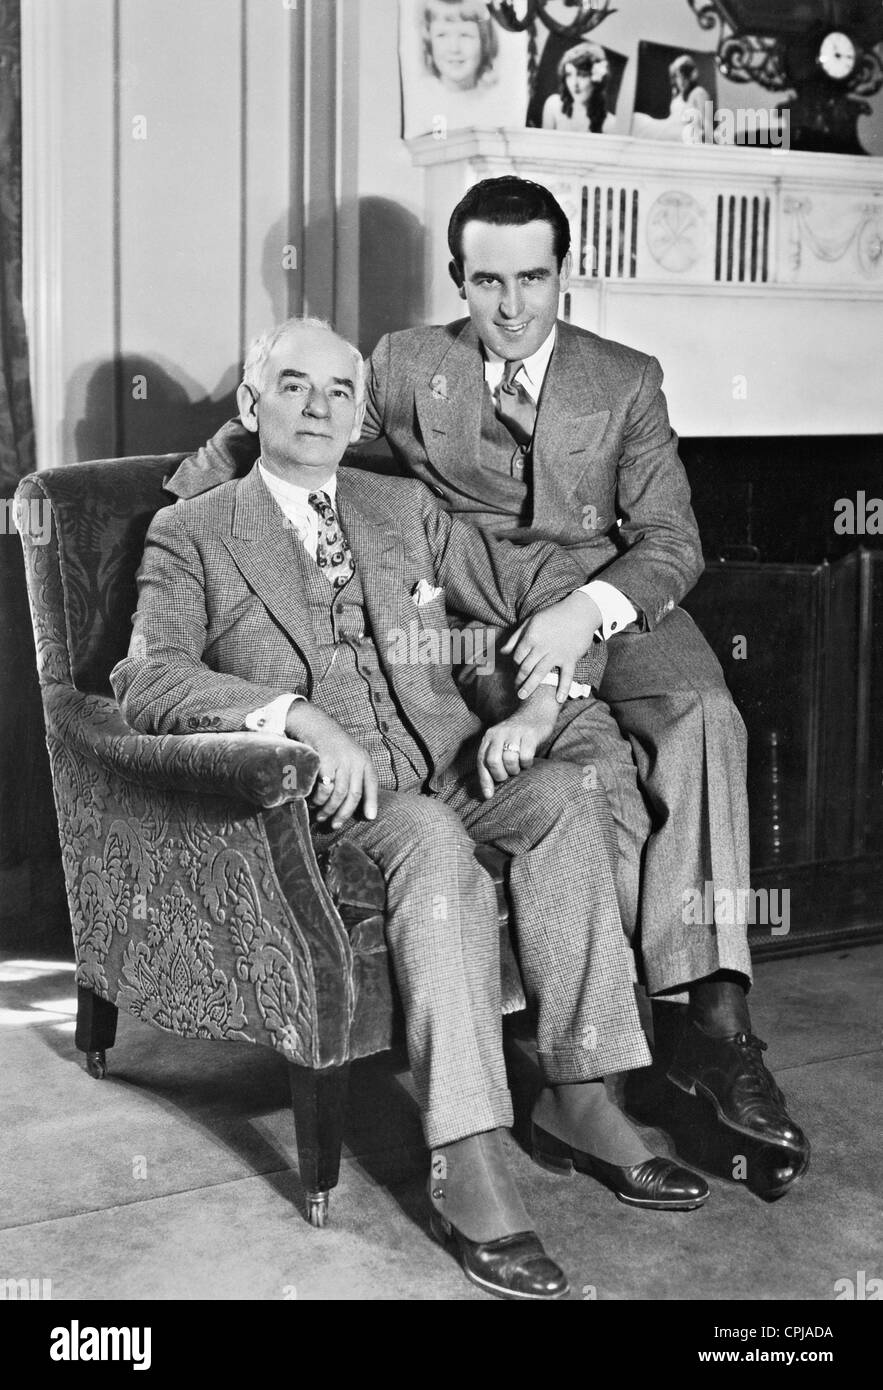 Harold Lloyd and his father - Stock Image